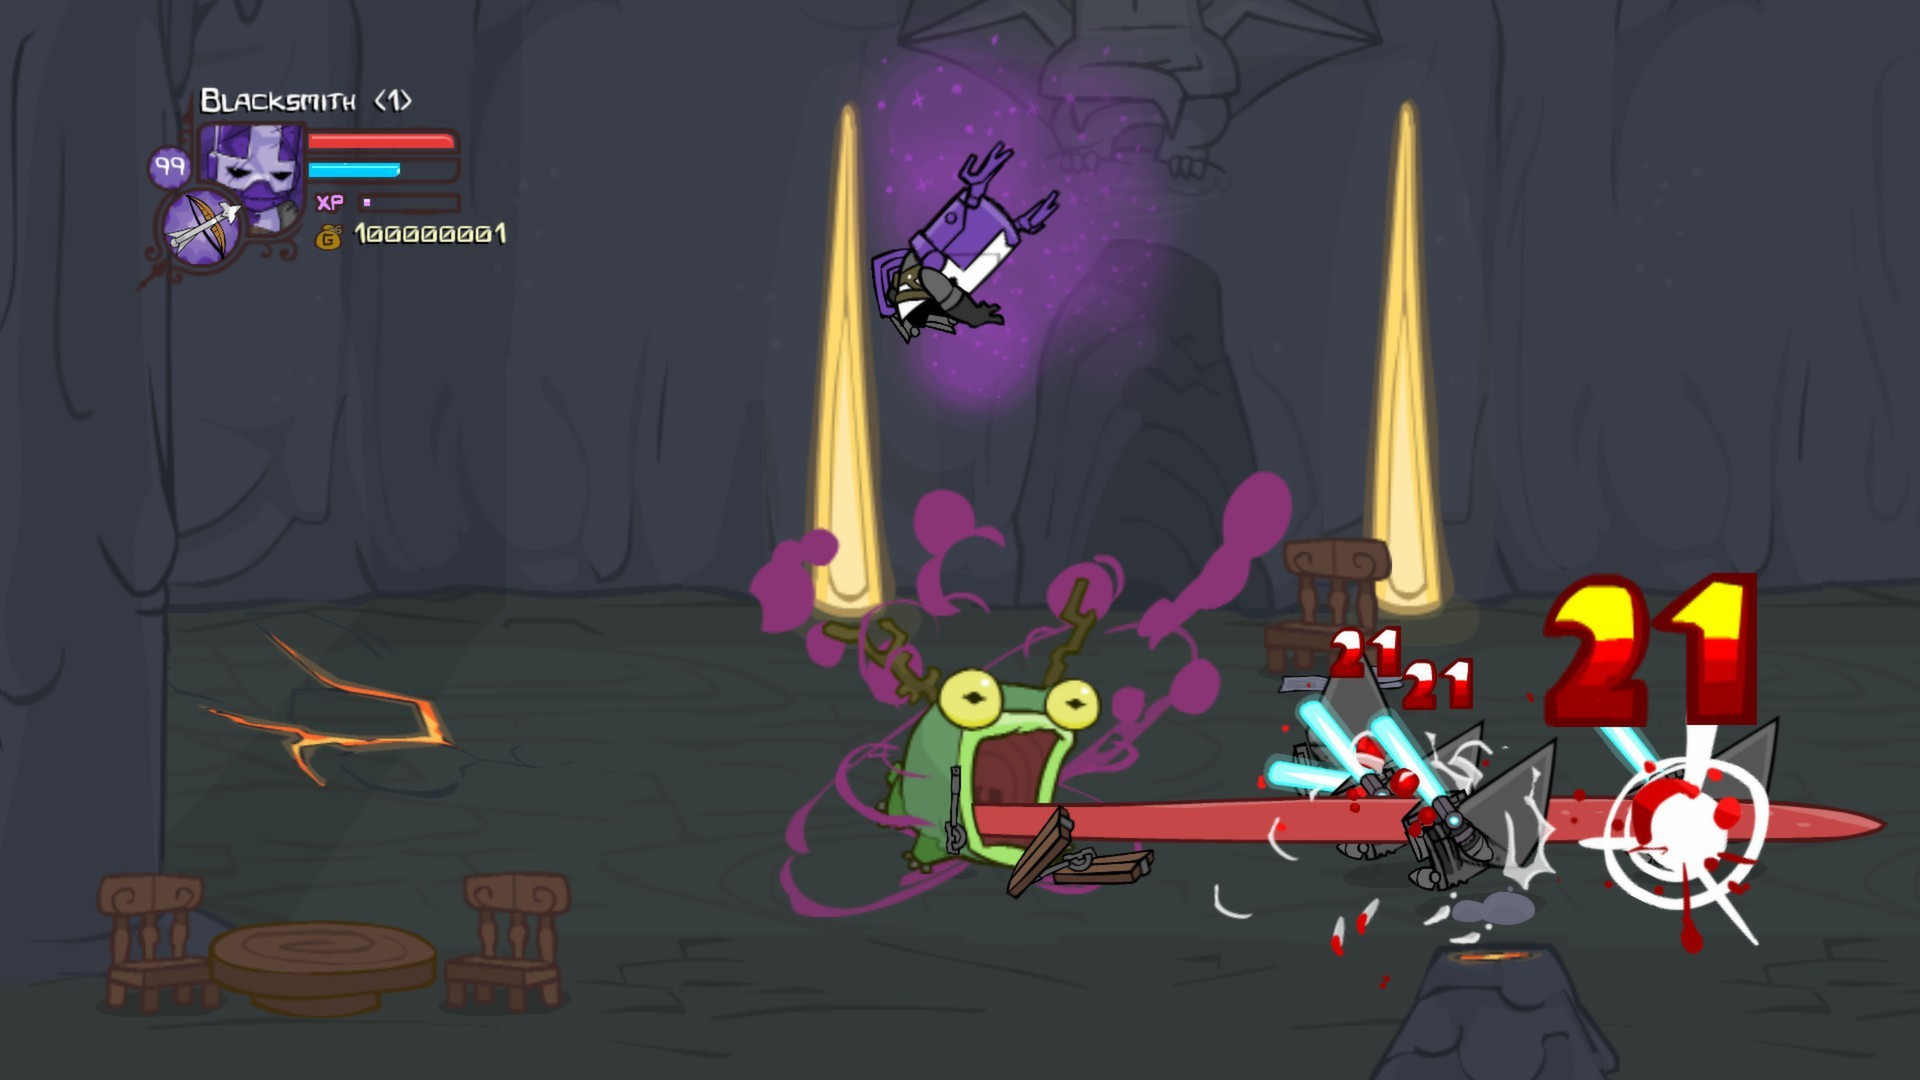 Castle Crashers - Blacksmith Pack PC Key Fiyatları